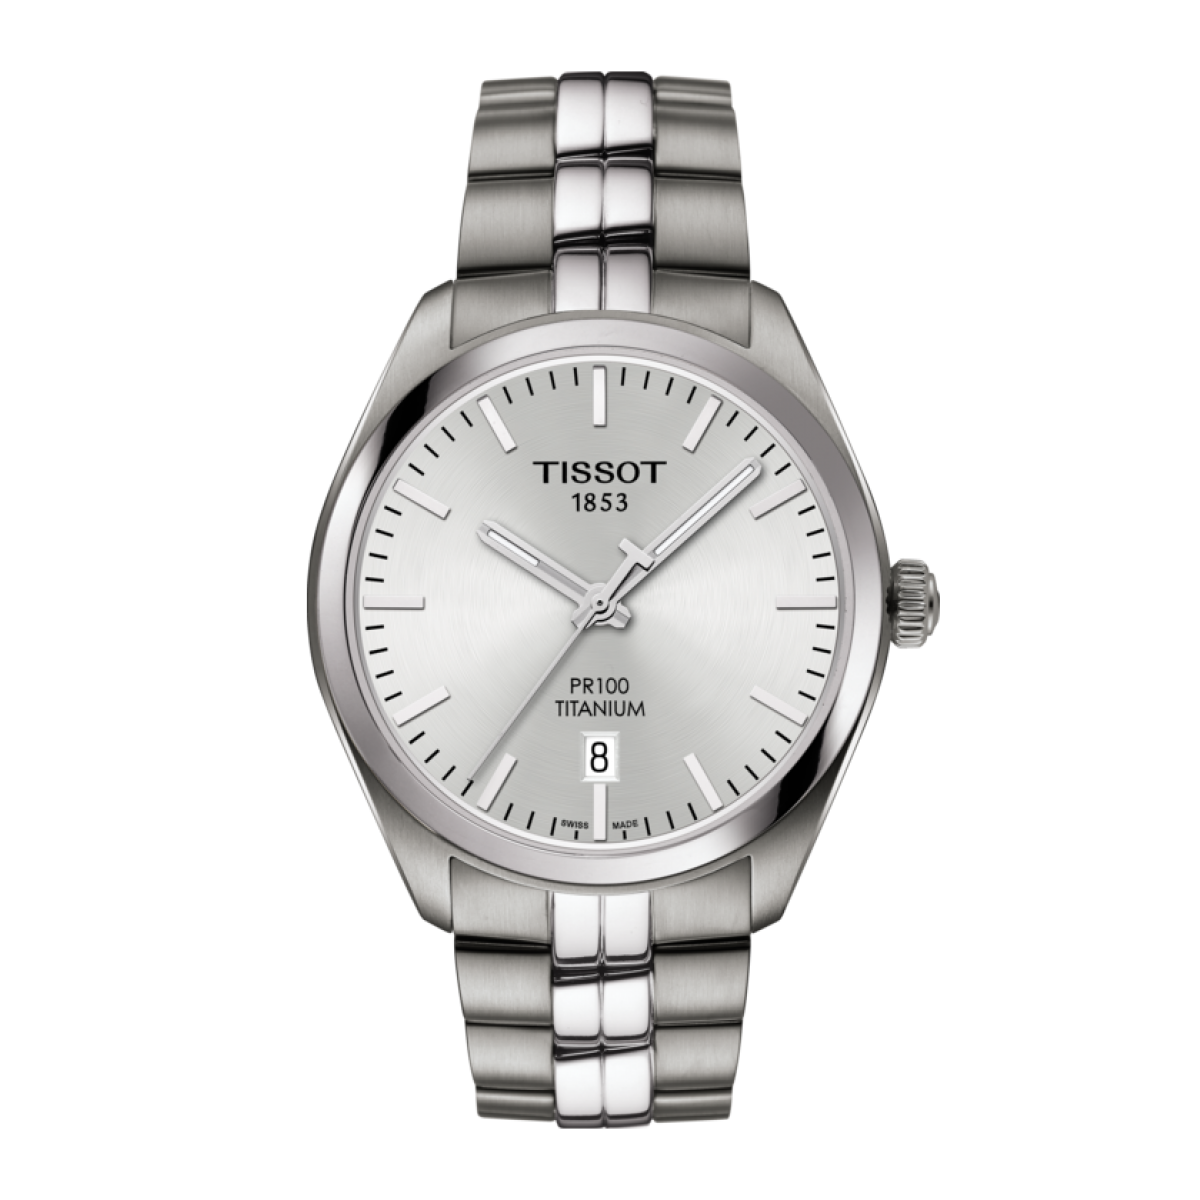 The Tissot Pr 100 Is A Classic Watch Destined To Be Worn Often And For Every Occasion It Features The Simple A Titanium Watches Watches For Men Bracelet Watch